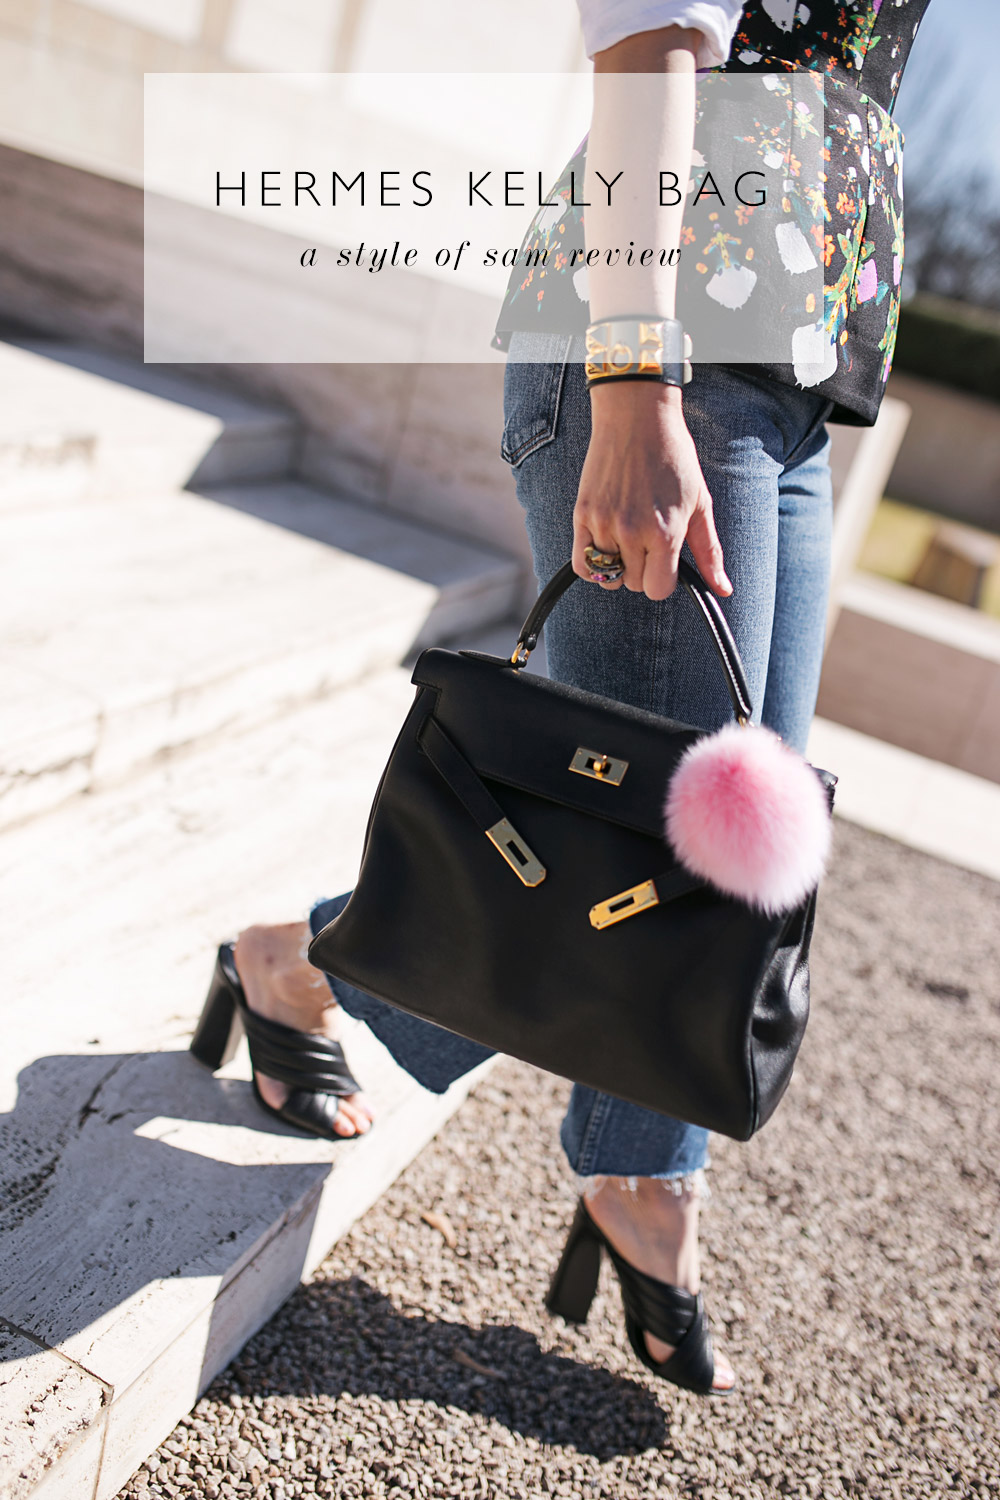 ff4d120c What's In My Bag blogger - Style of Sam | DFW Fashion Blog